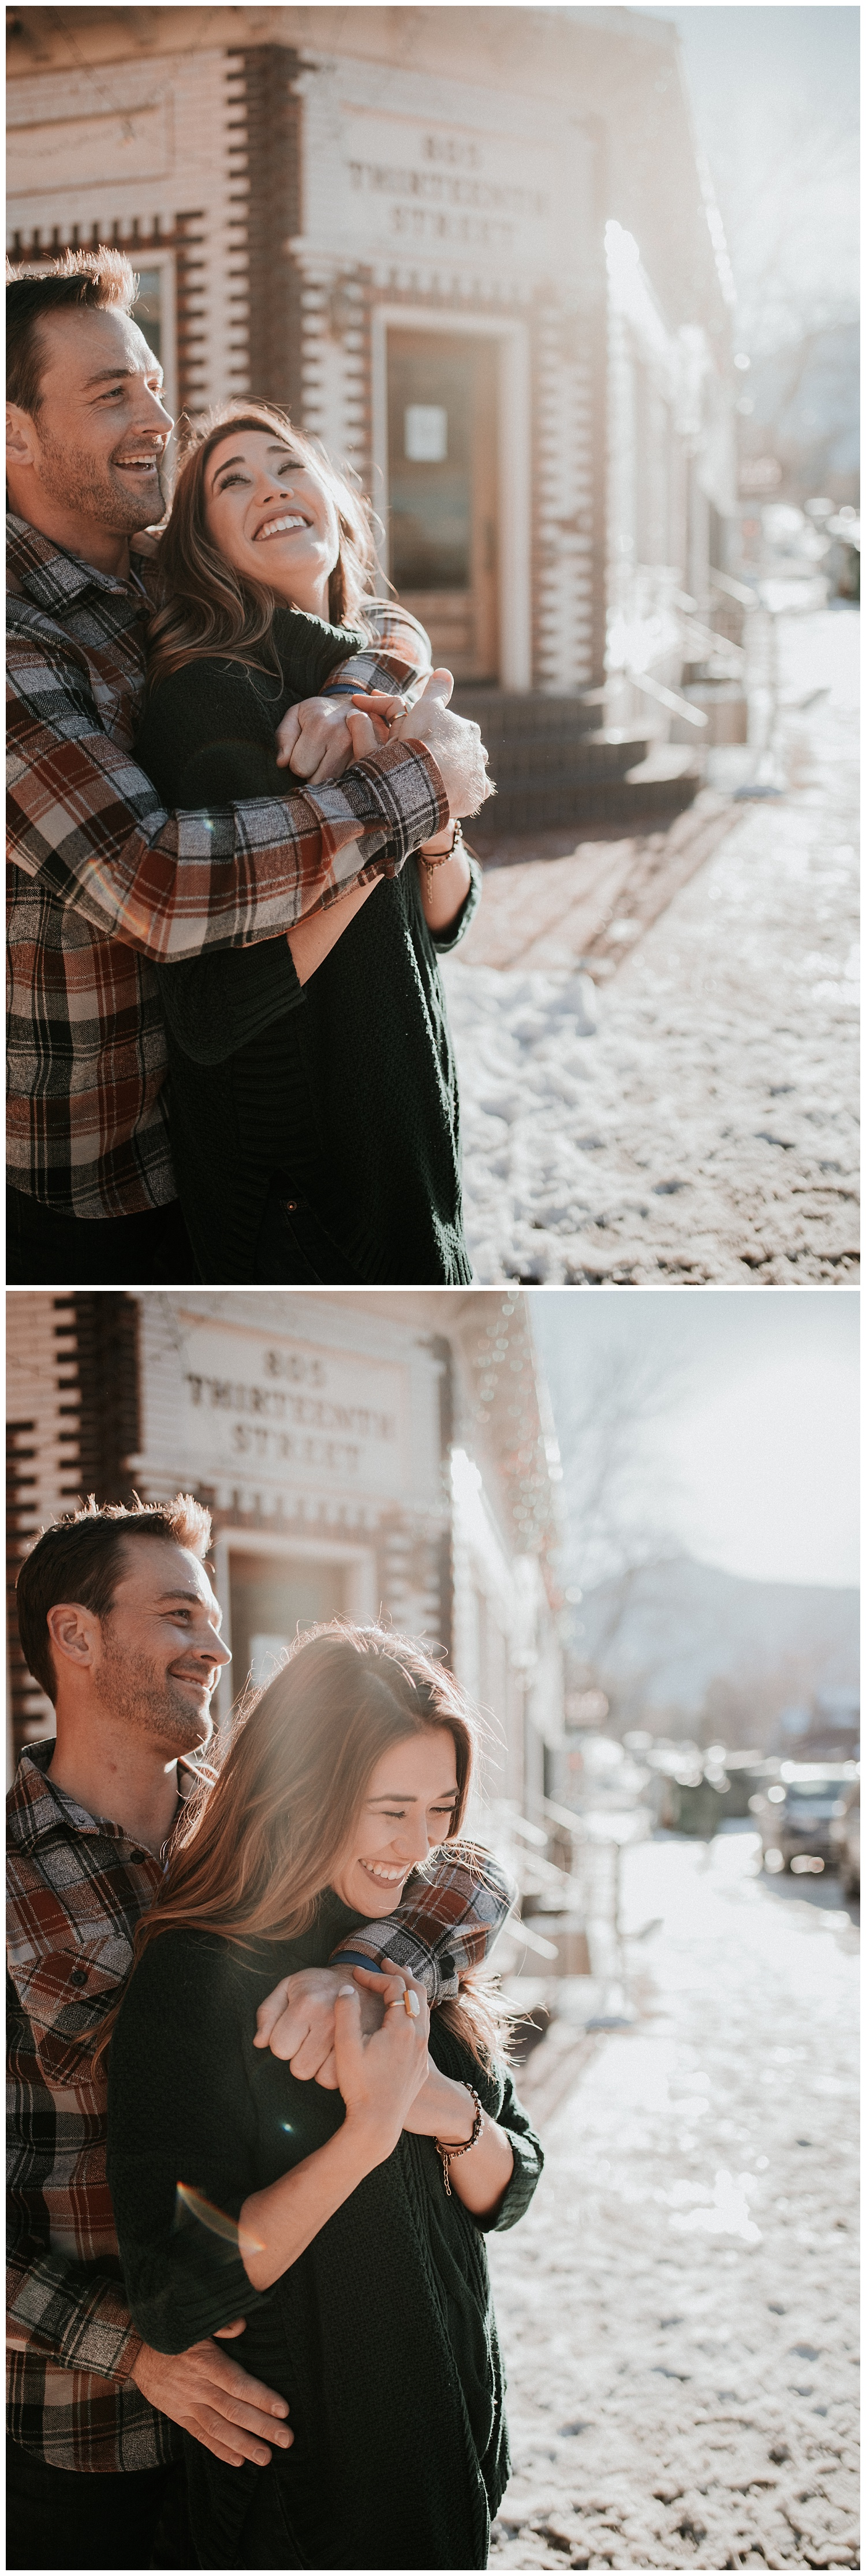 downtown golden engagement session, denver engagement photographer, golden engagement photographer, colorado engagement photographer, outdoor engagement photos denver, urban engagement photos denver, wedding photographer denver, colorado wedding photographer, dark and moody photographer denver